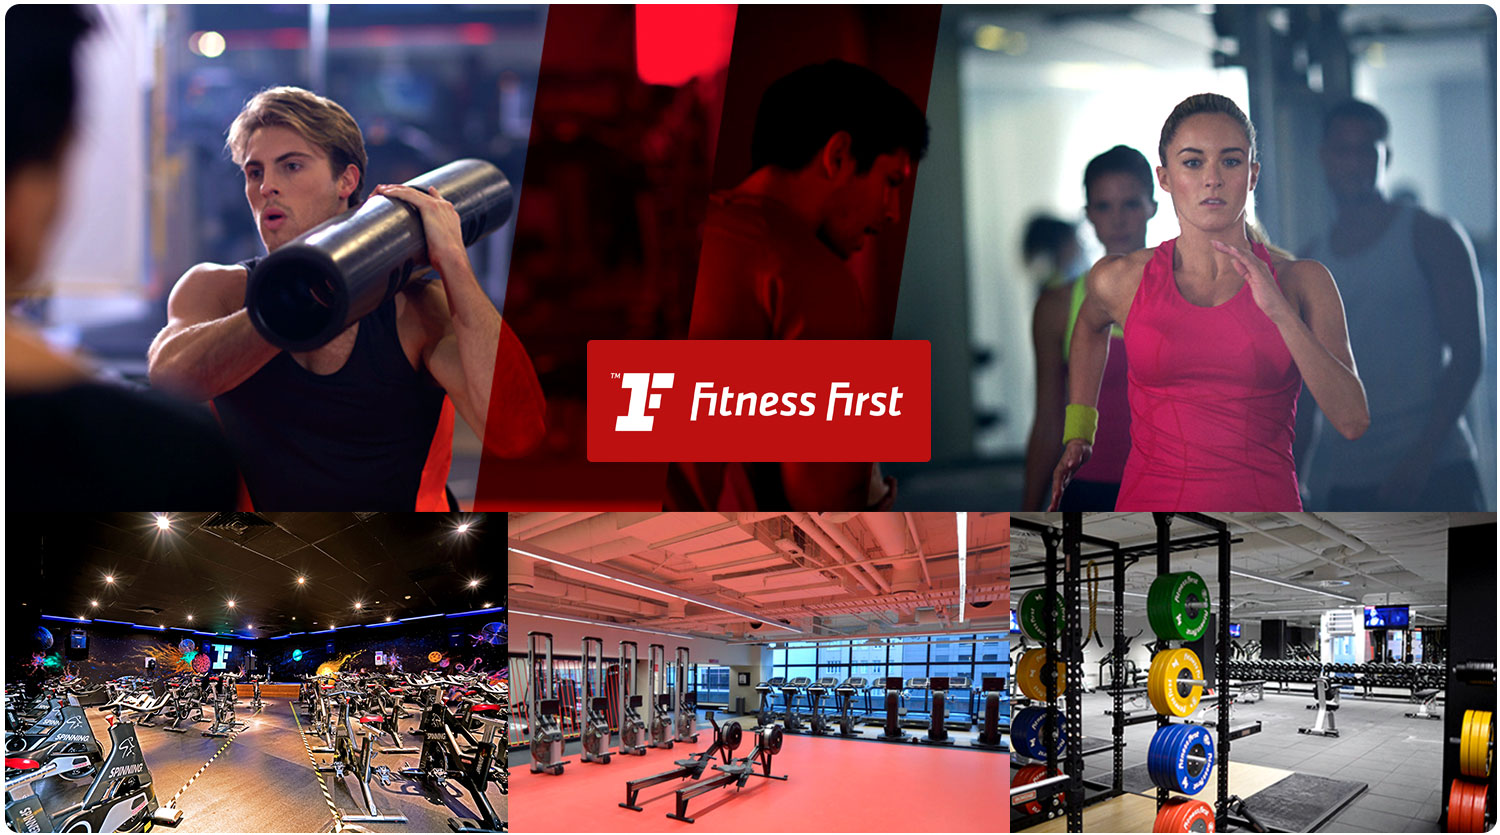 Start your Fitness Journey with Fitness First with only $14.95 for 14 days at Fitness First North Ryde NSW. Experience our first class gym and freestyle classes inc. Zumba, Pilates, Yoga, Les Mills and more. Take the first step with Fitness First North Ryde NSW.